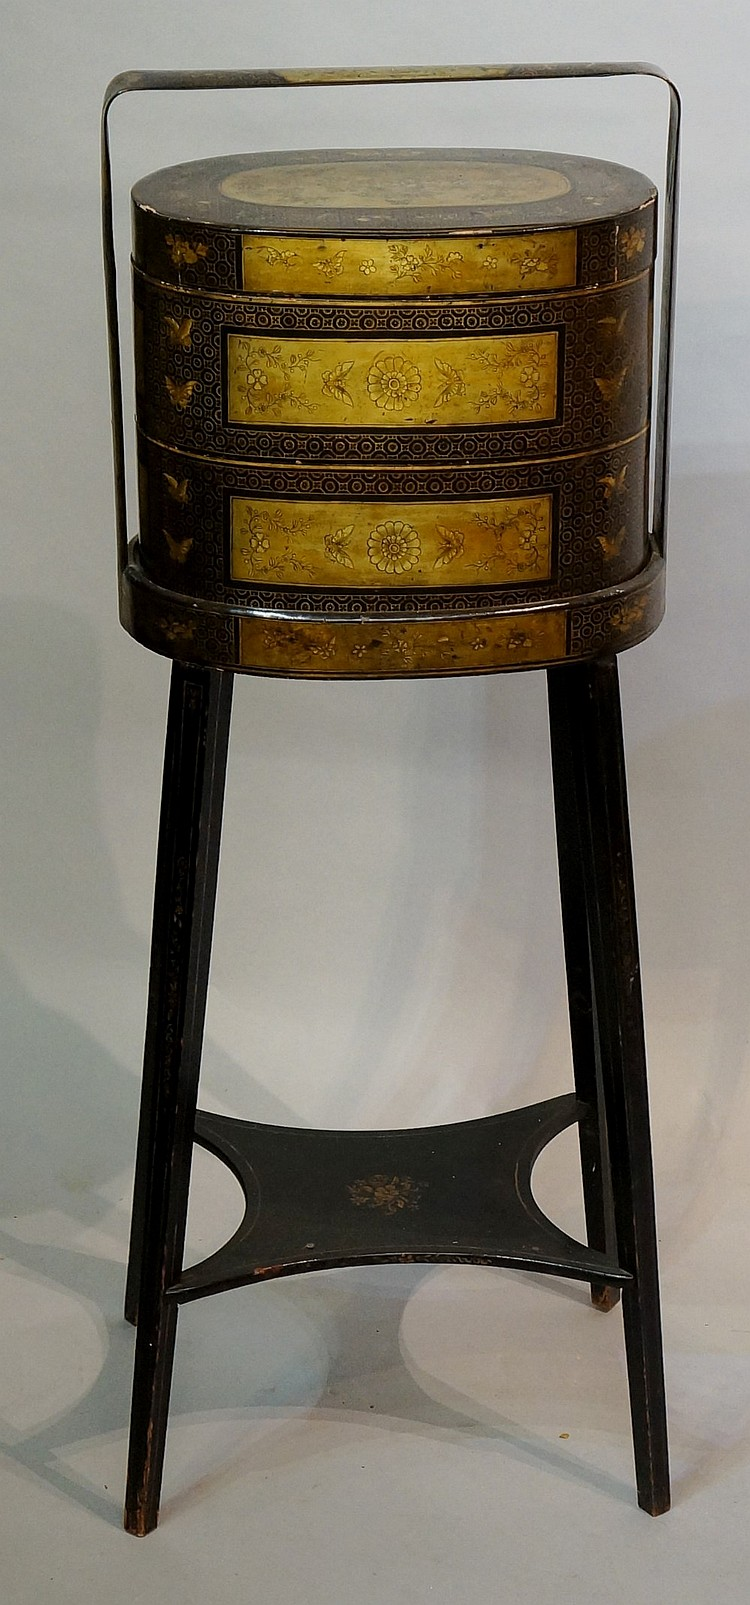 A 19th Century Japanese black lacquer cabinet on stand, the oval three tier